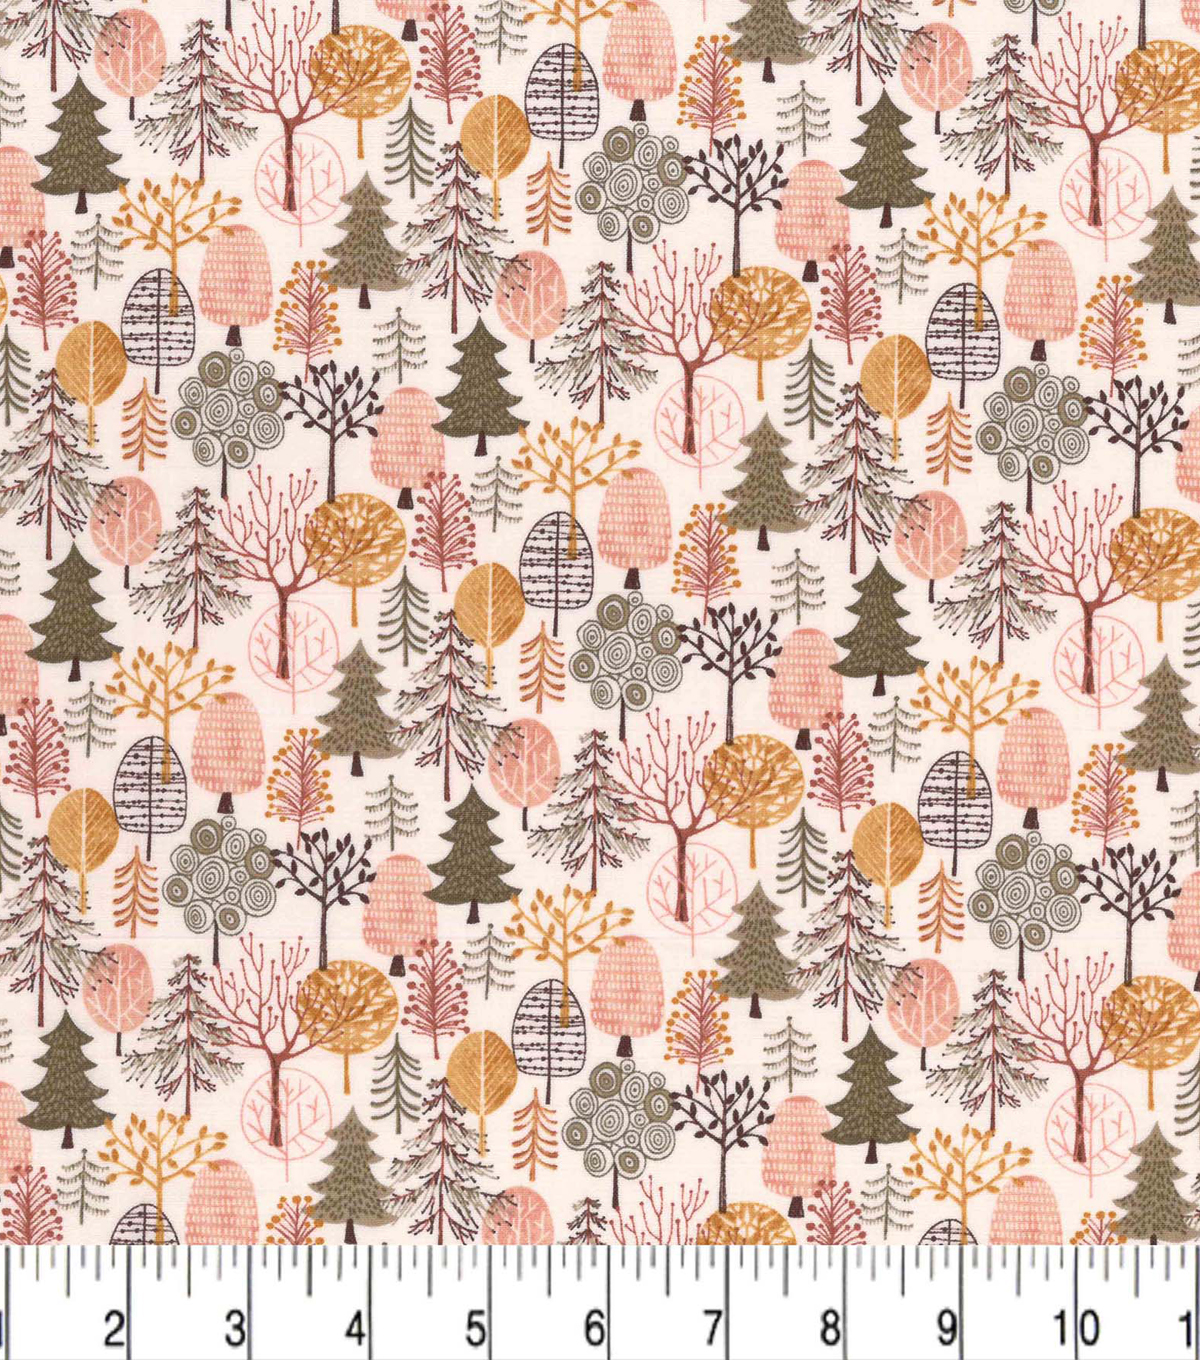 Premium Prints Cotton Fabric-Forest Campground